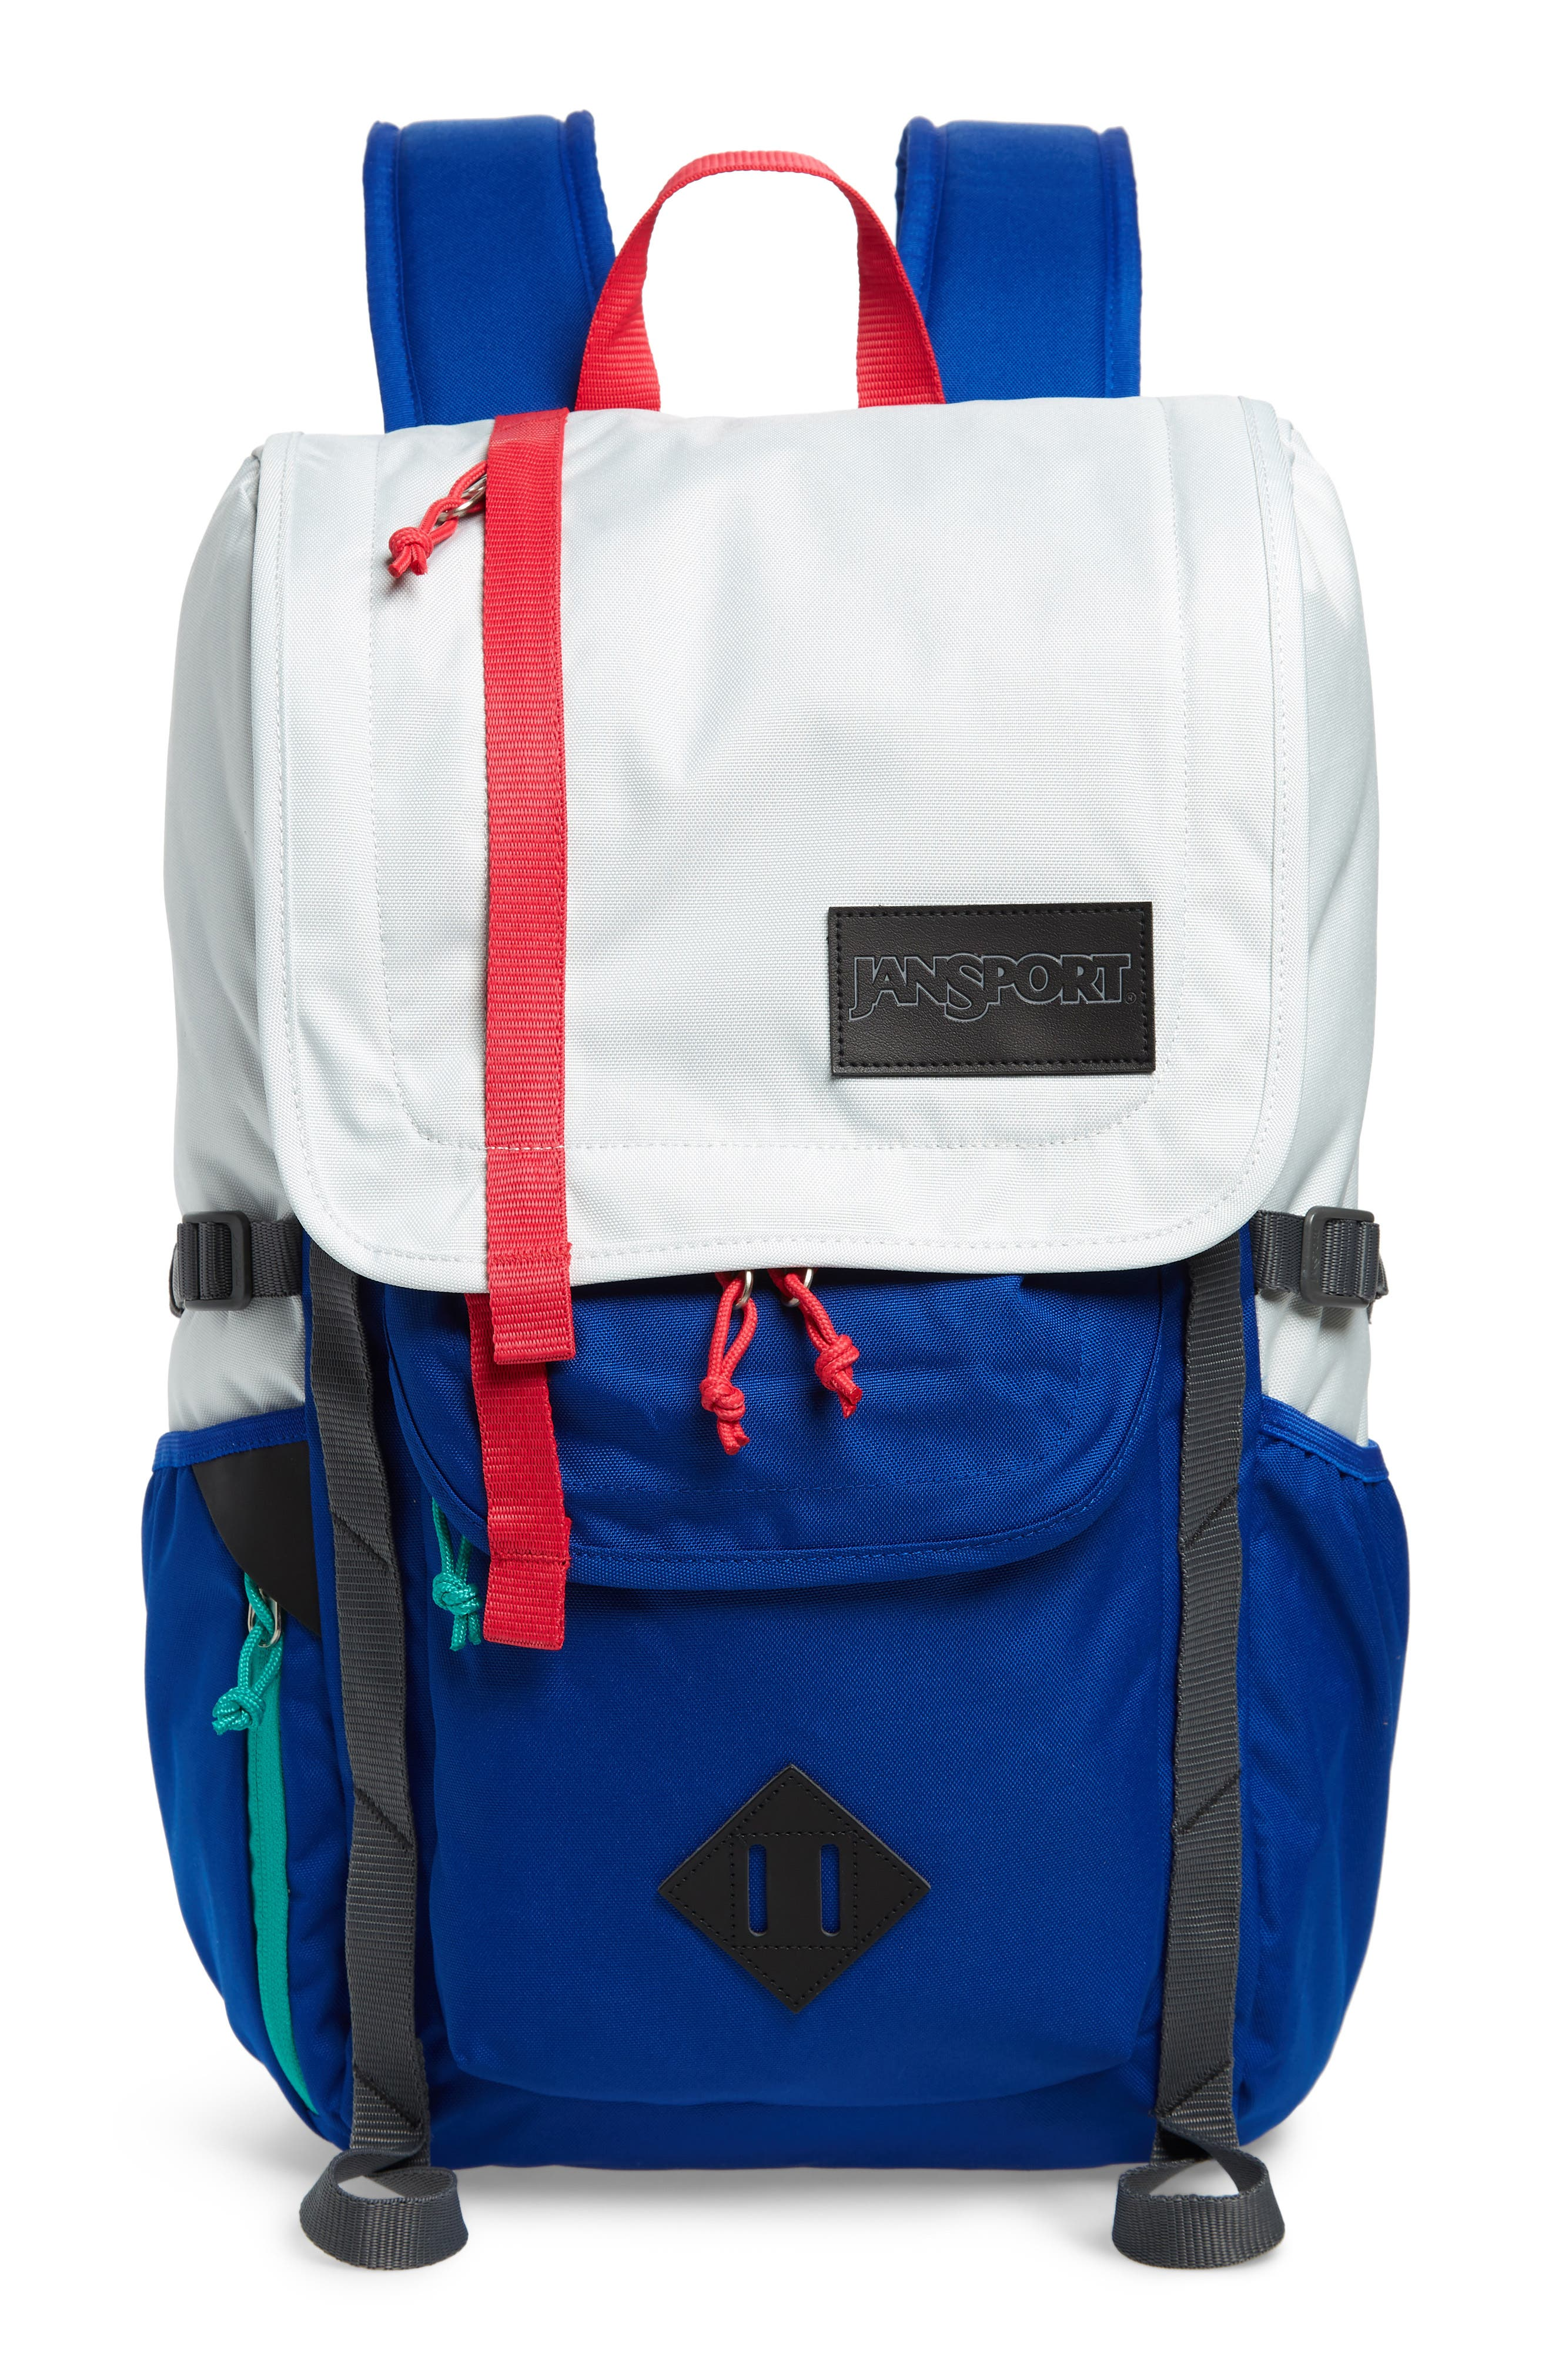 JANSPORT 'Hatchet' Backpack in Goose Grey/ Regal Blue